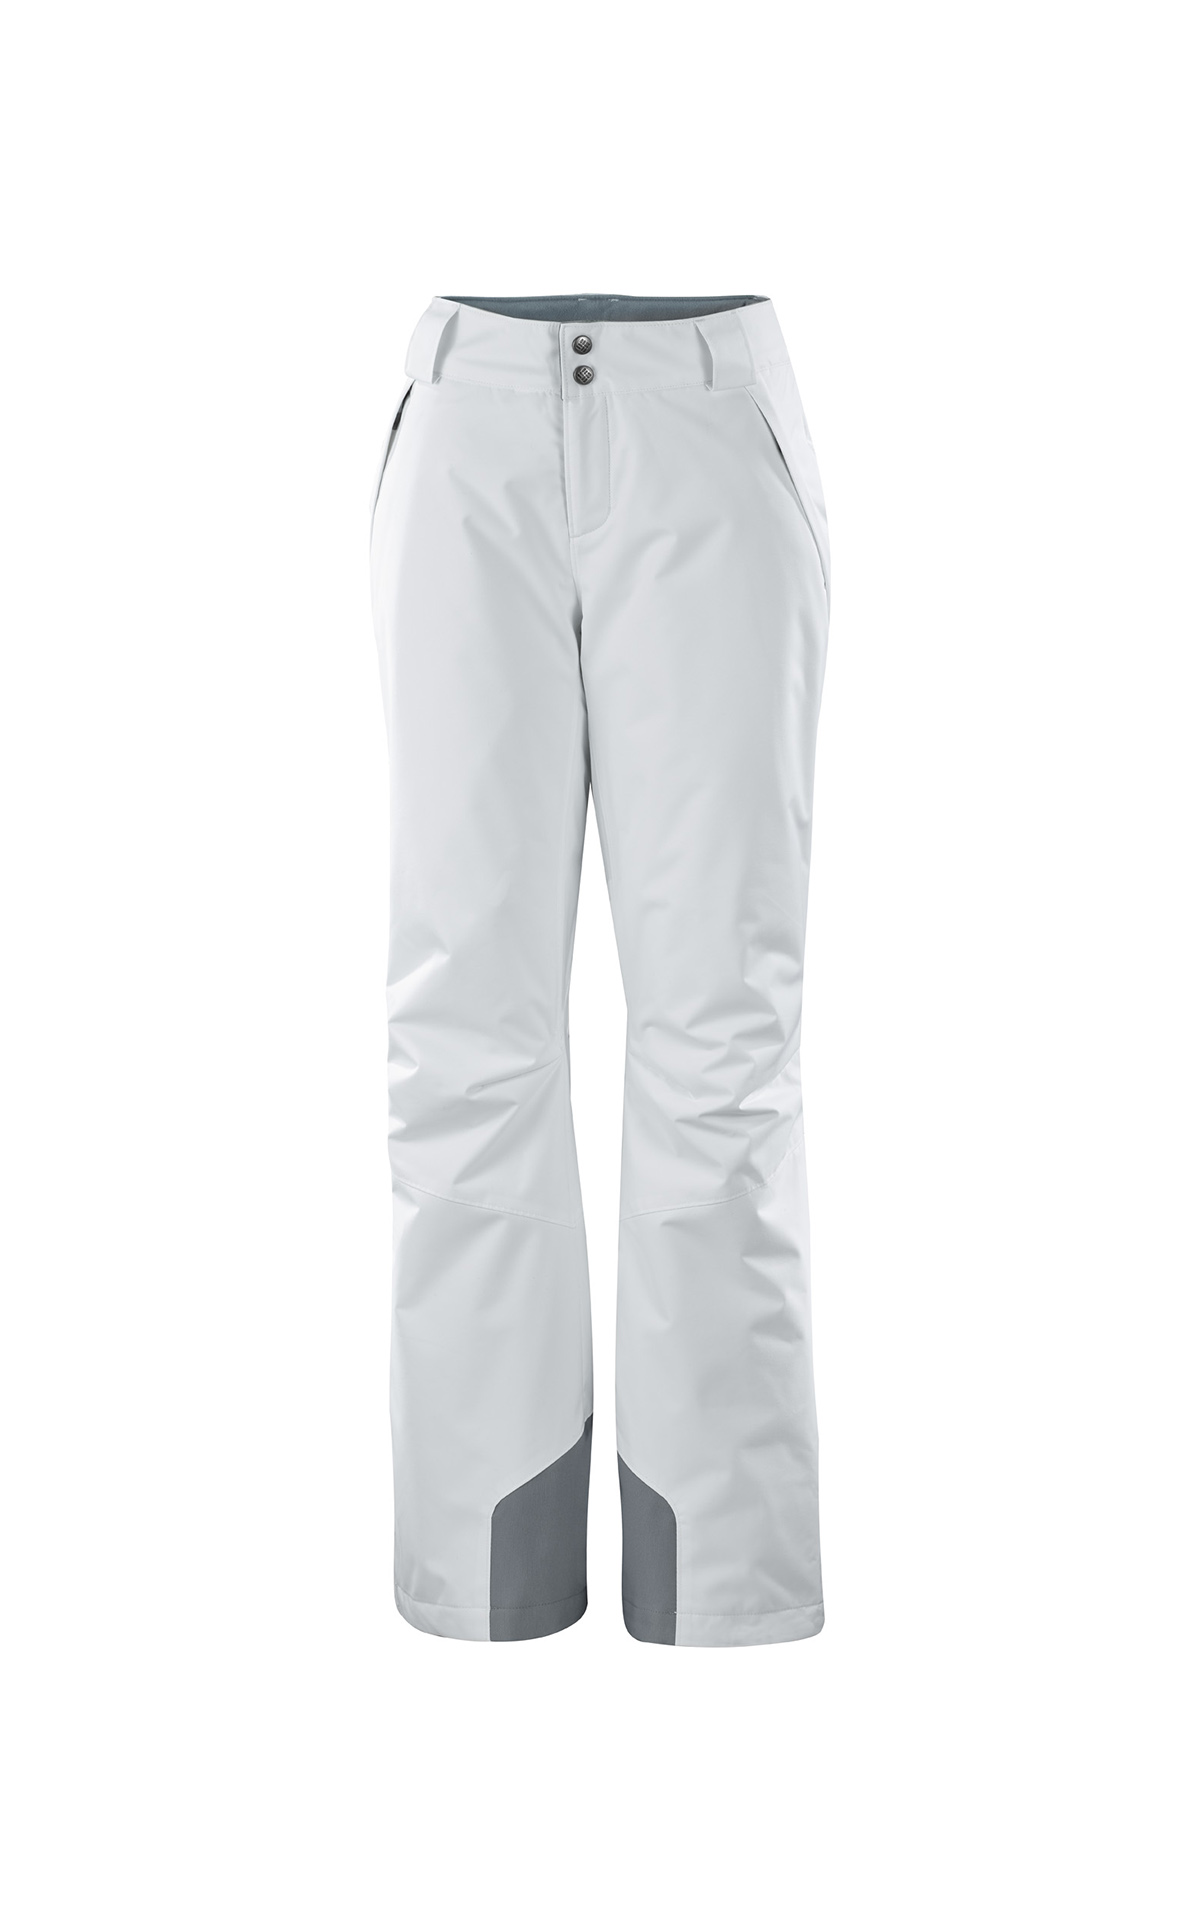 White ski pants Columbia